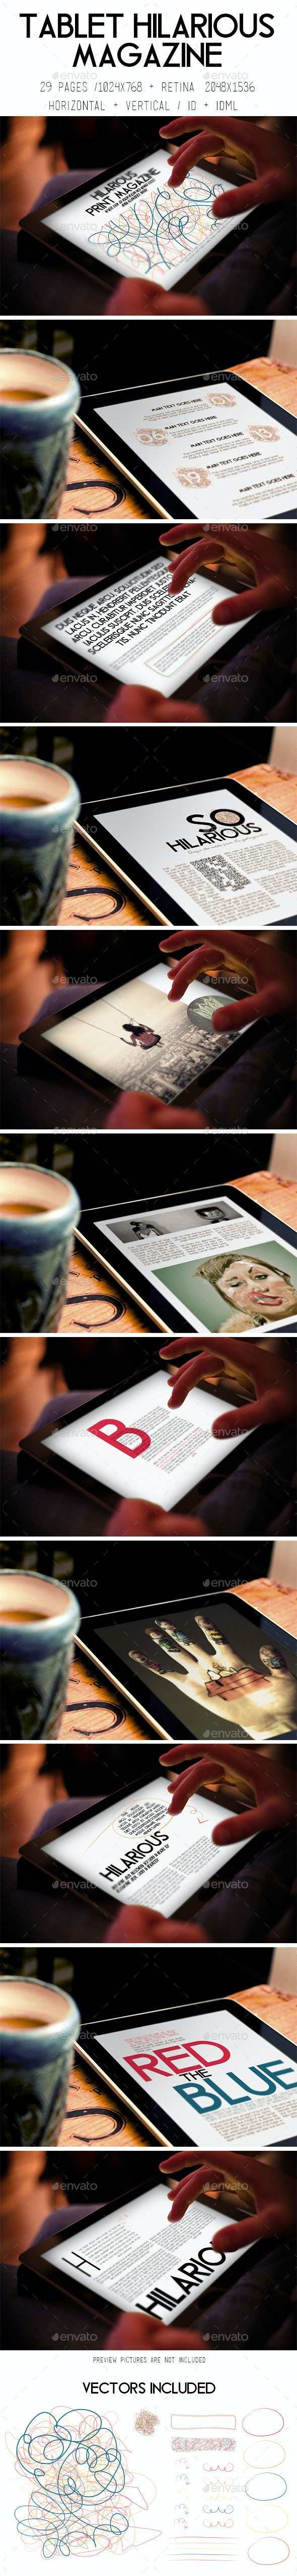 iPad & Tablet Hilarious Magazine - Digital Magazines ePublishing